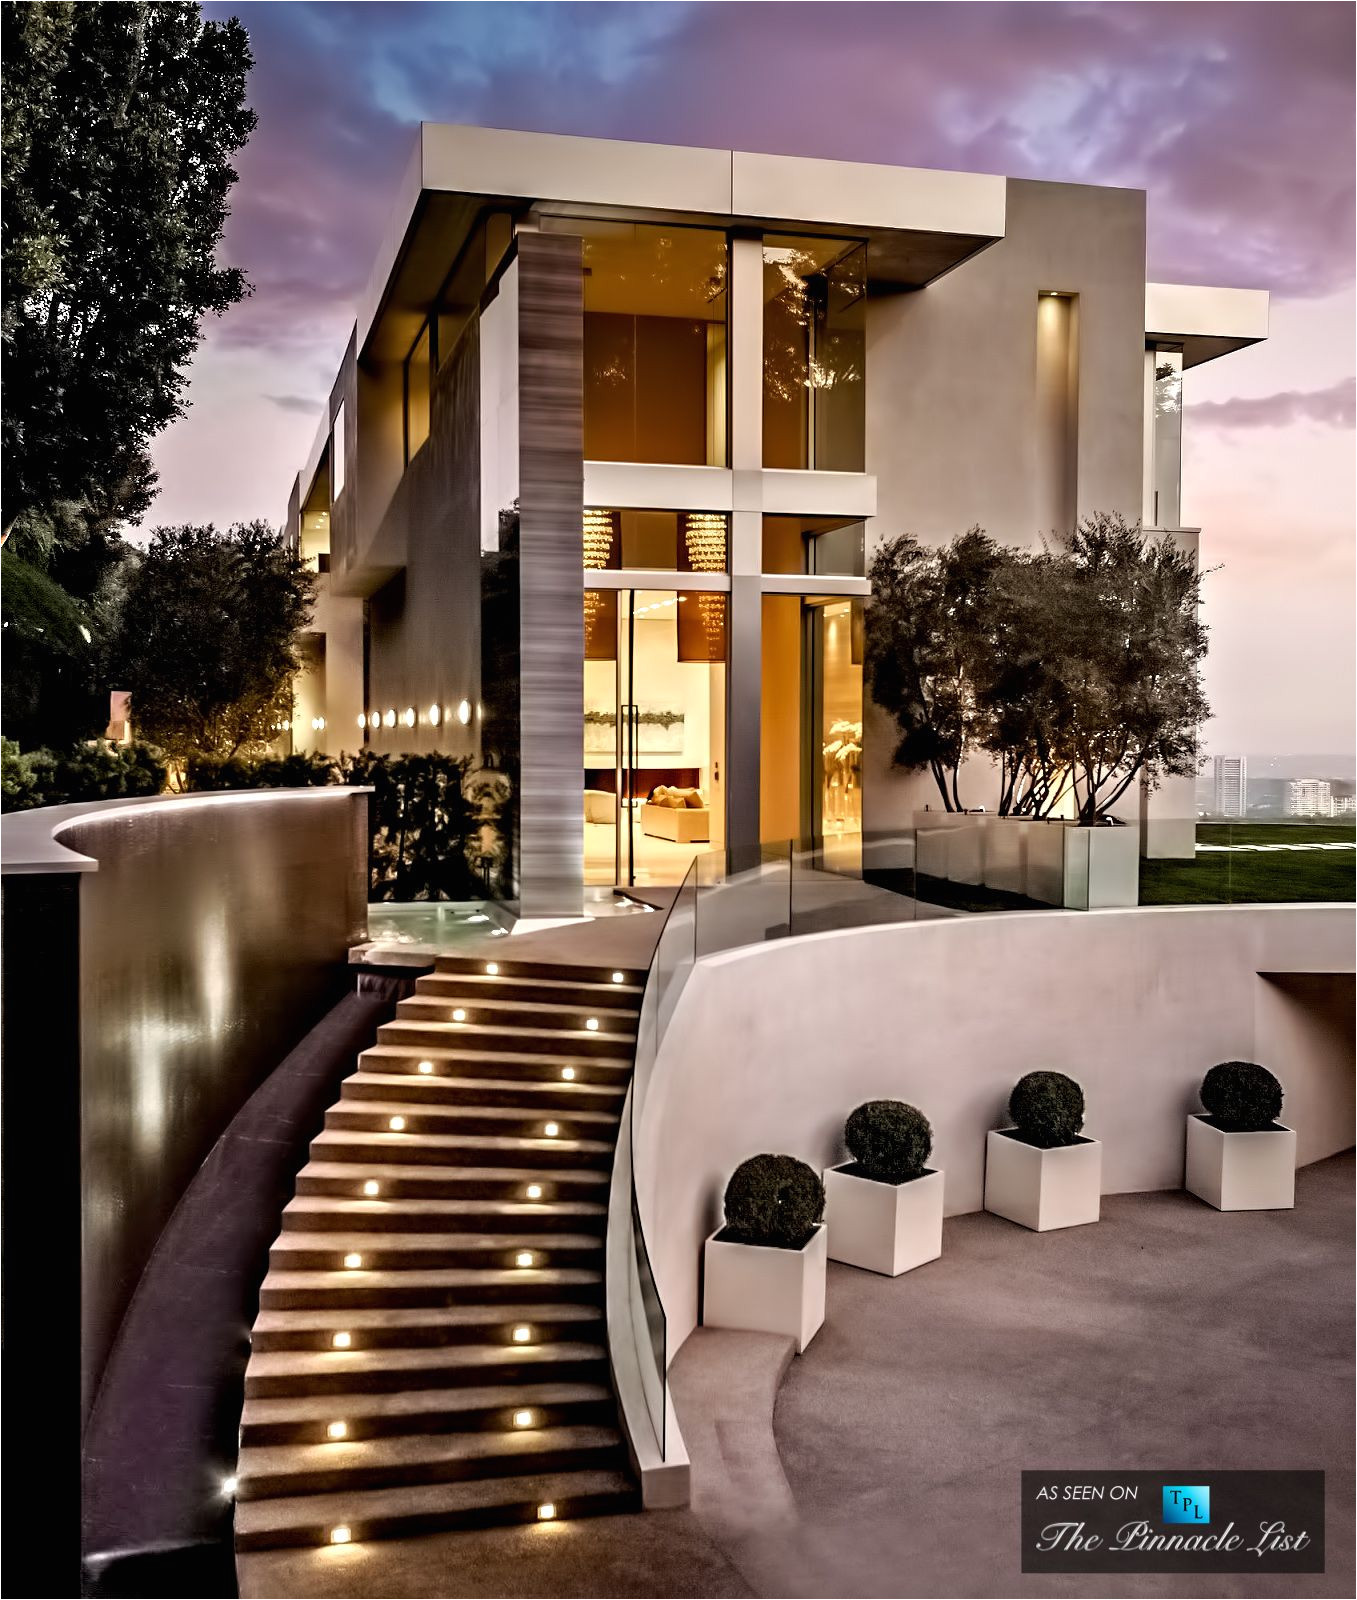 24 5 million bel air residence 755 sarbonne rd los angeles ca